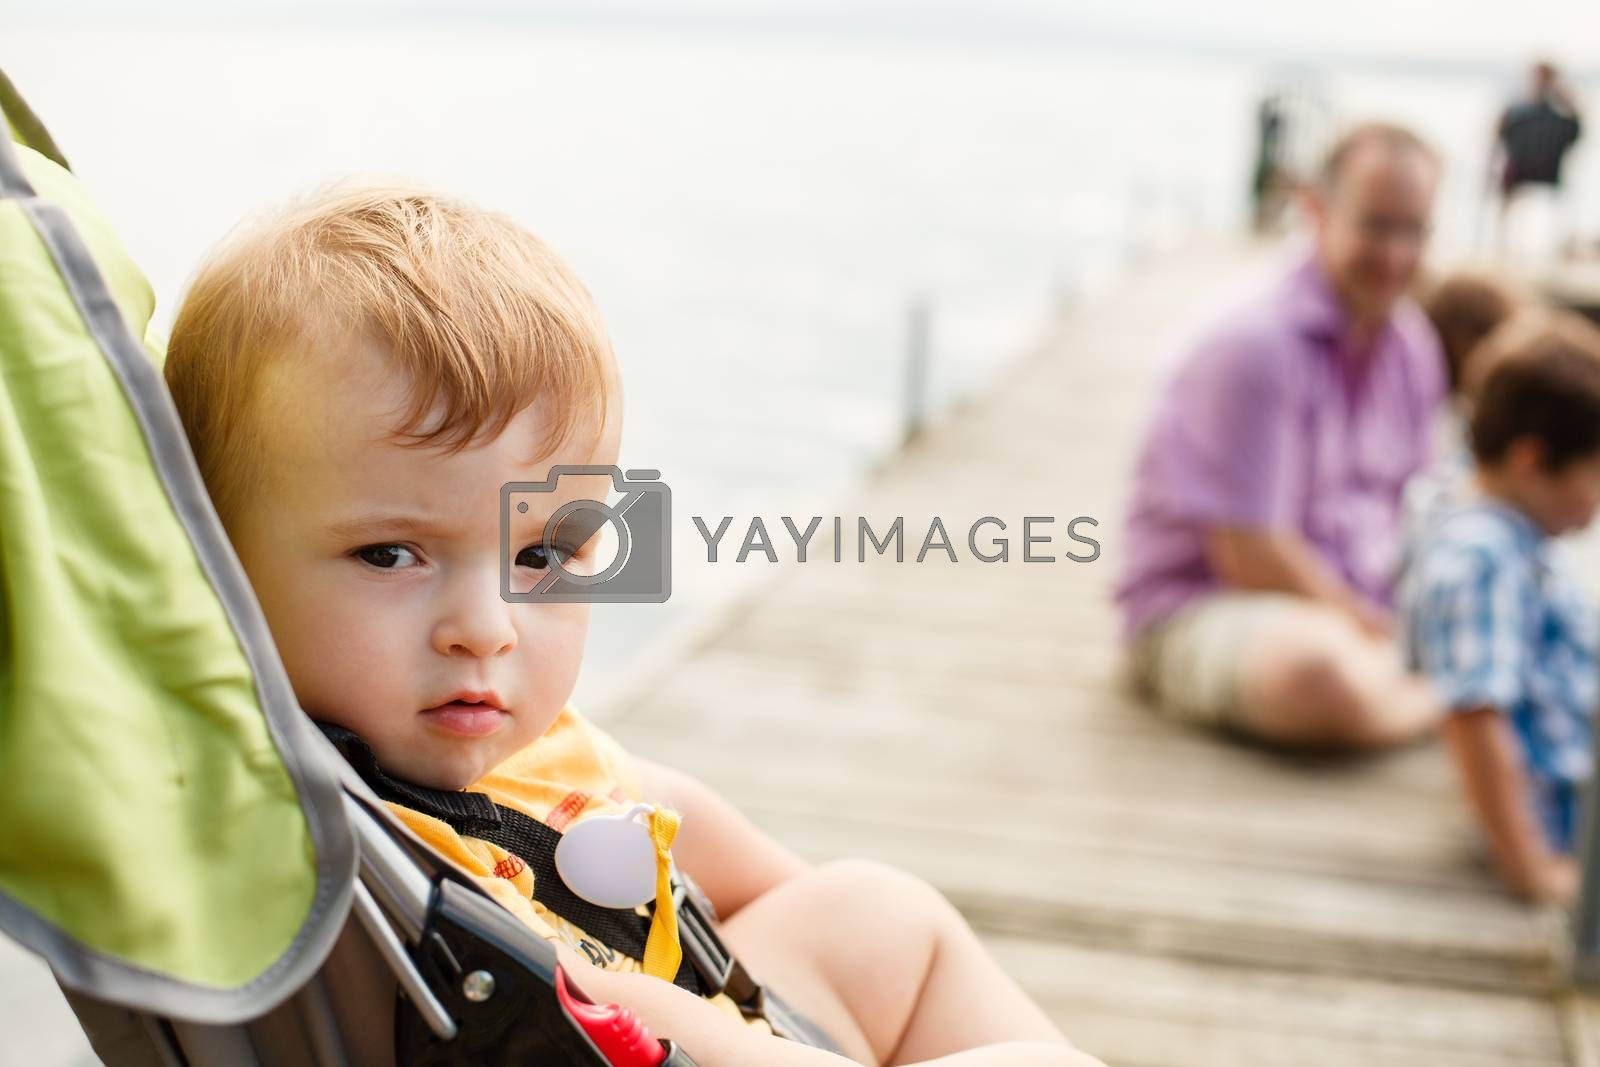 Baby in a stroller by a wharf